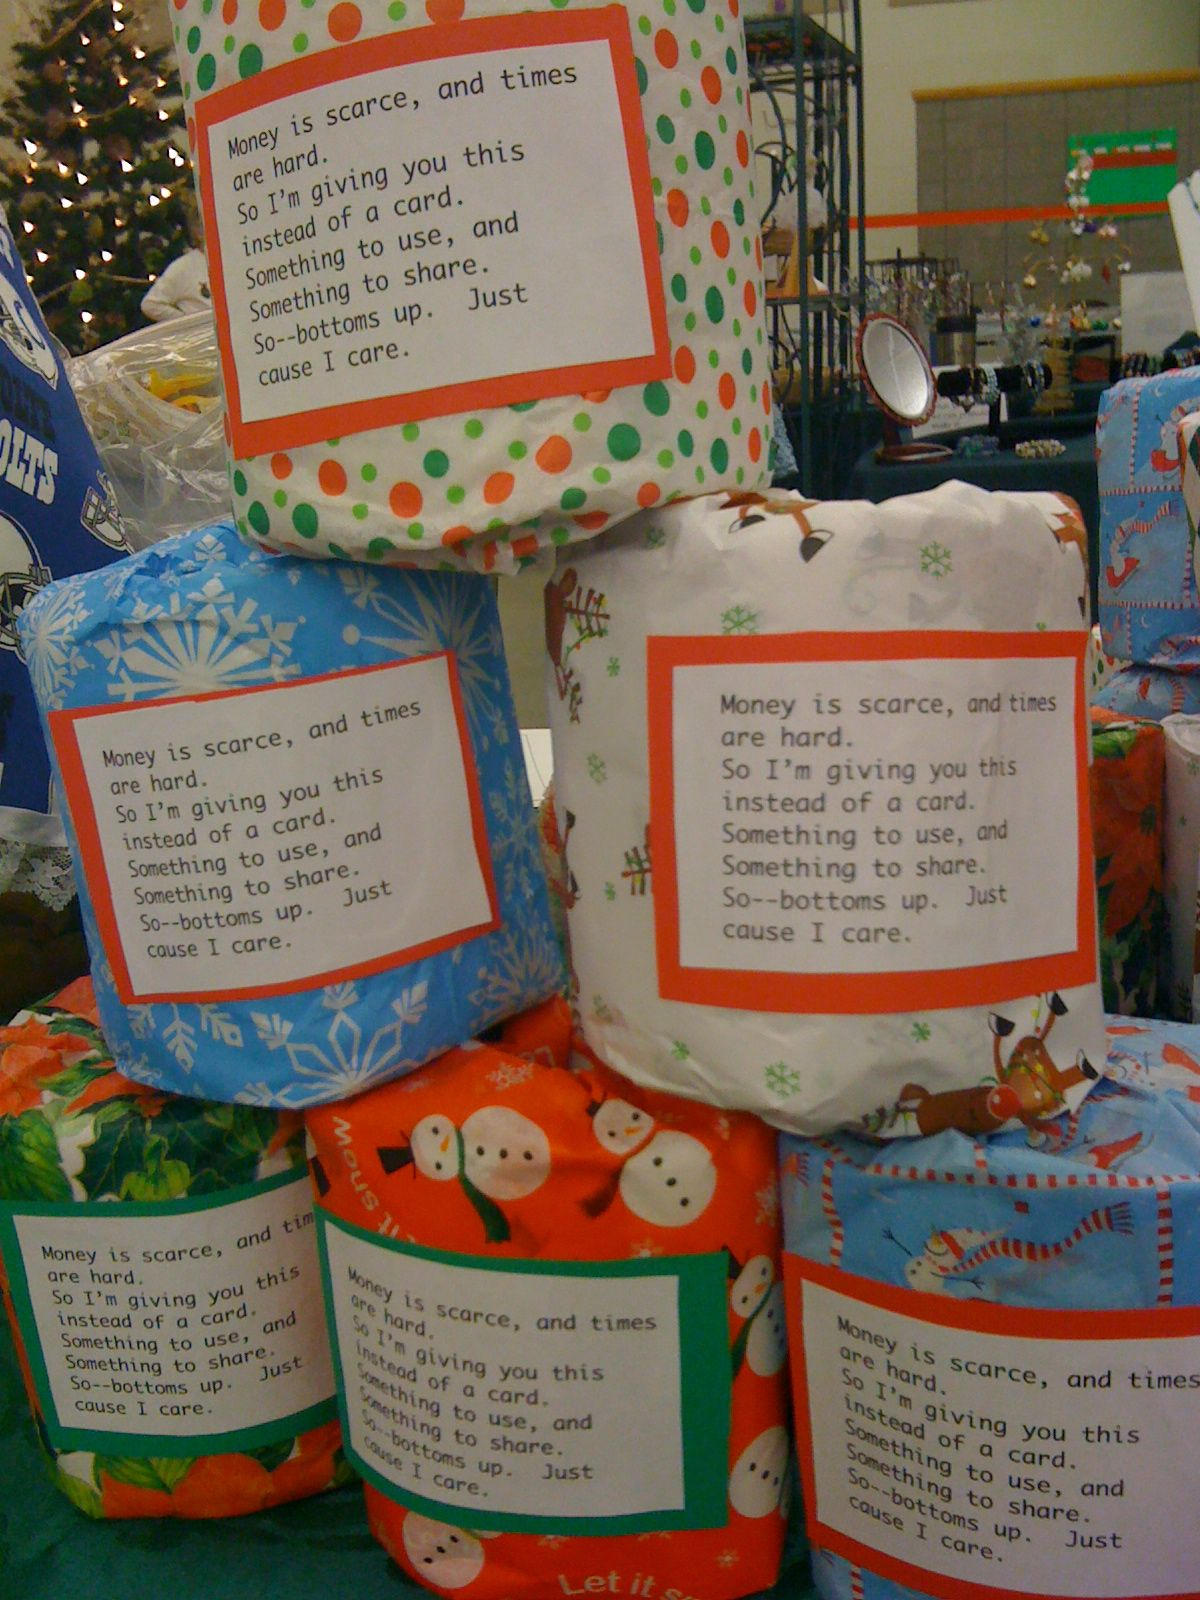 Toilet Paper Gag Gifts Money Or A Gift Card Can Be Inserted In The Top